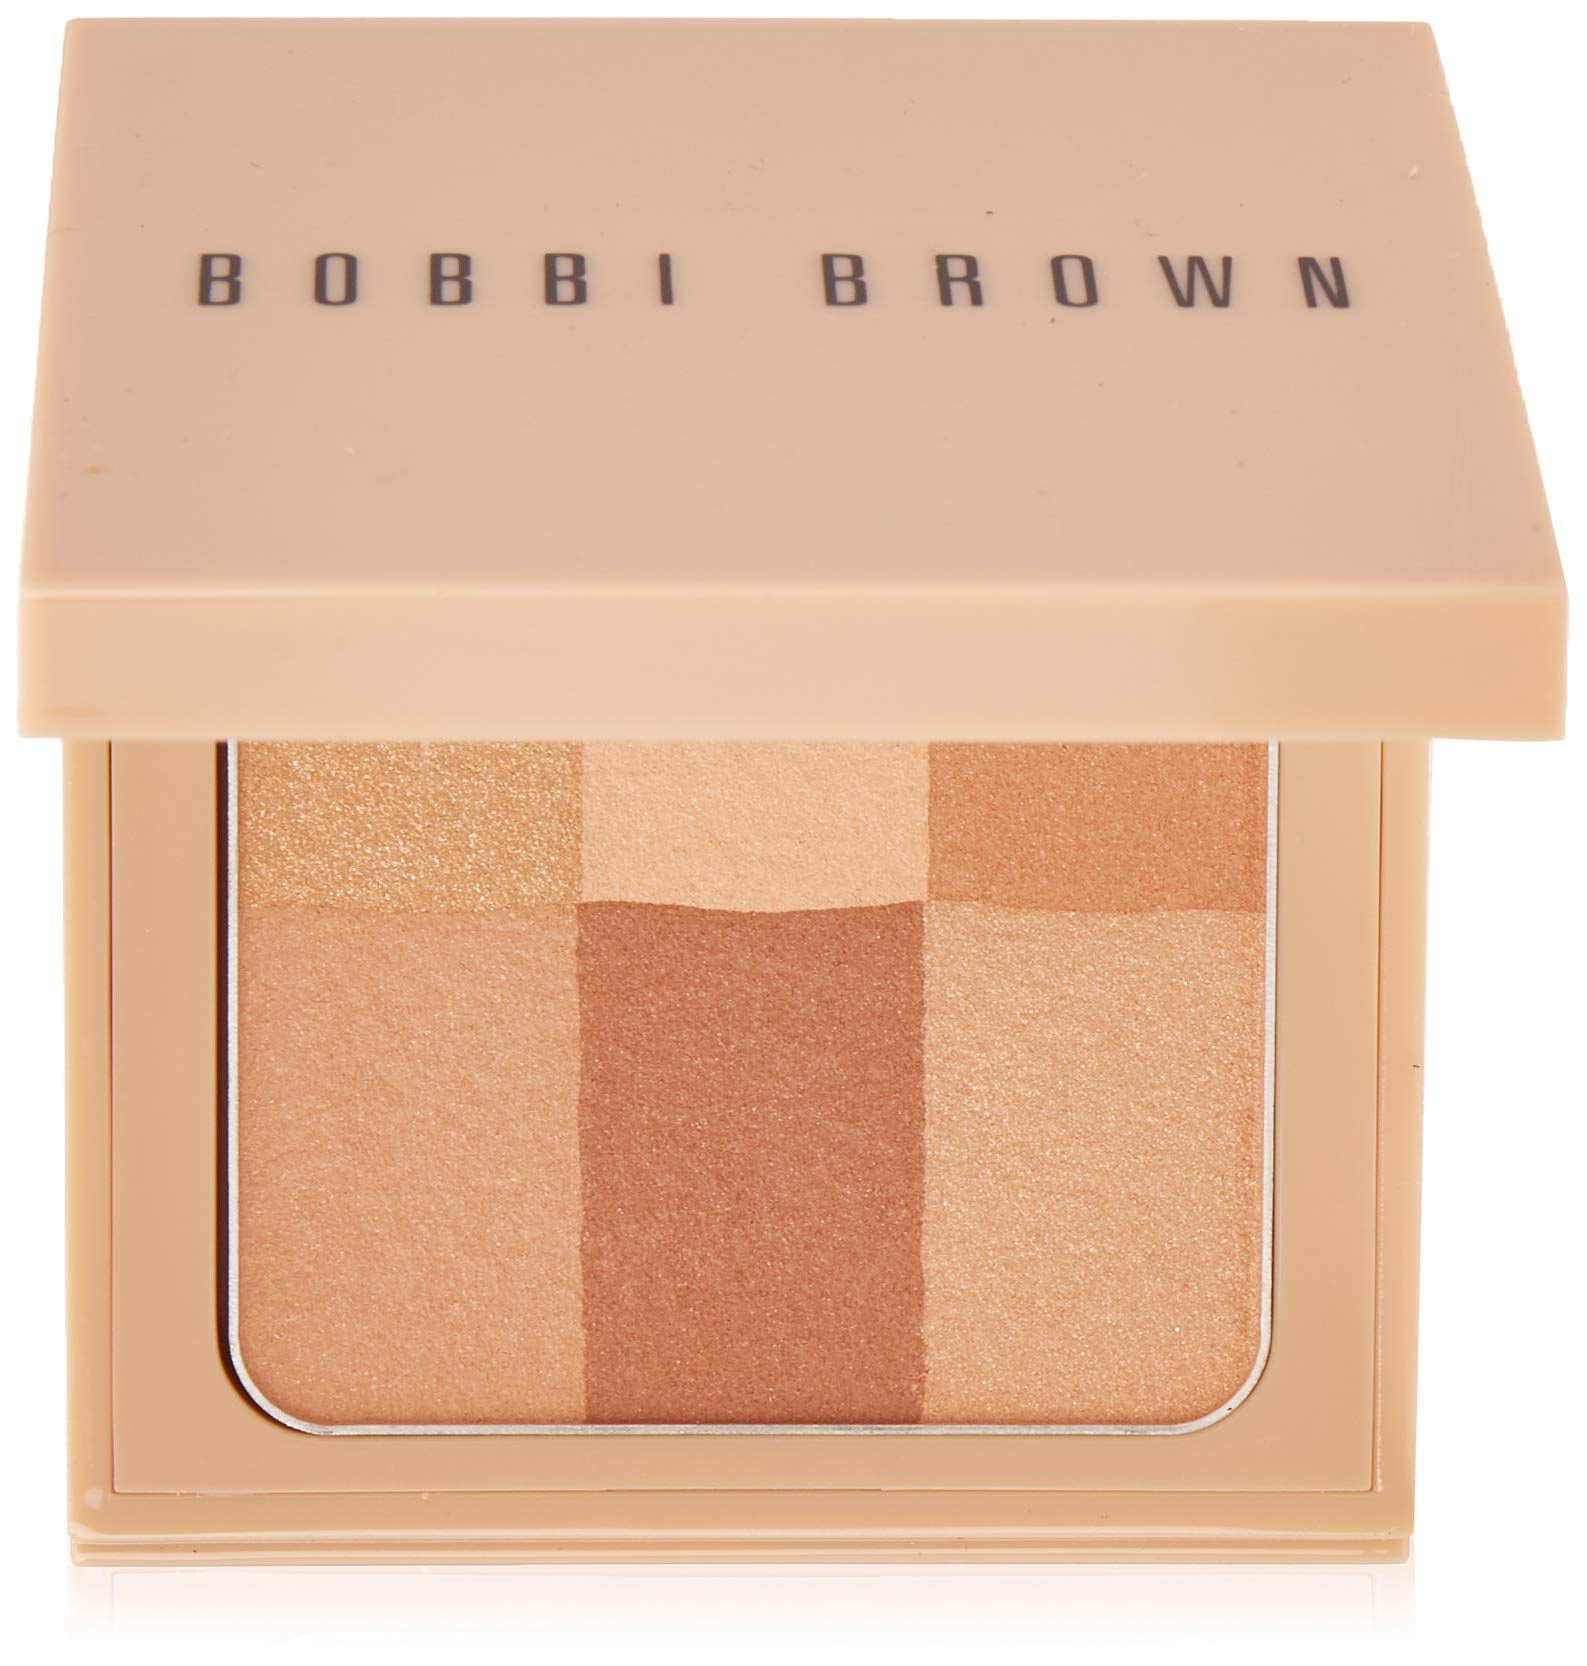 Bobbi Brown Nude Finish Illuminating Powder - Buff By Bobbi Brown for Women - 0.23 Oz Powder, 0.23 Oz by Bobbi Brown